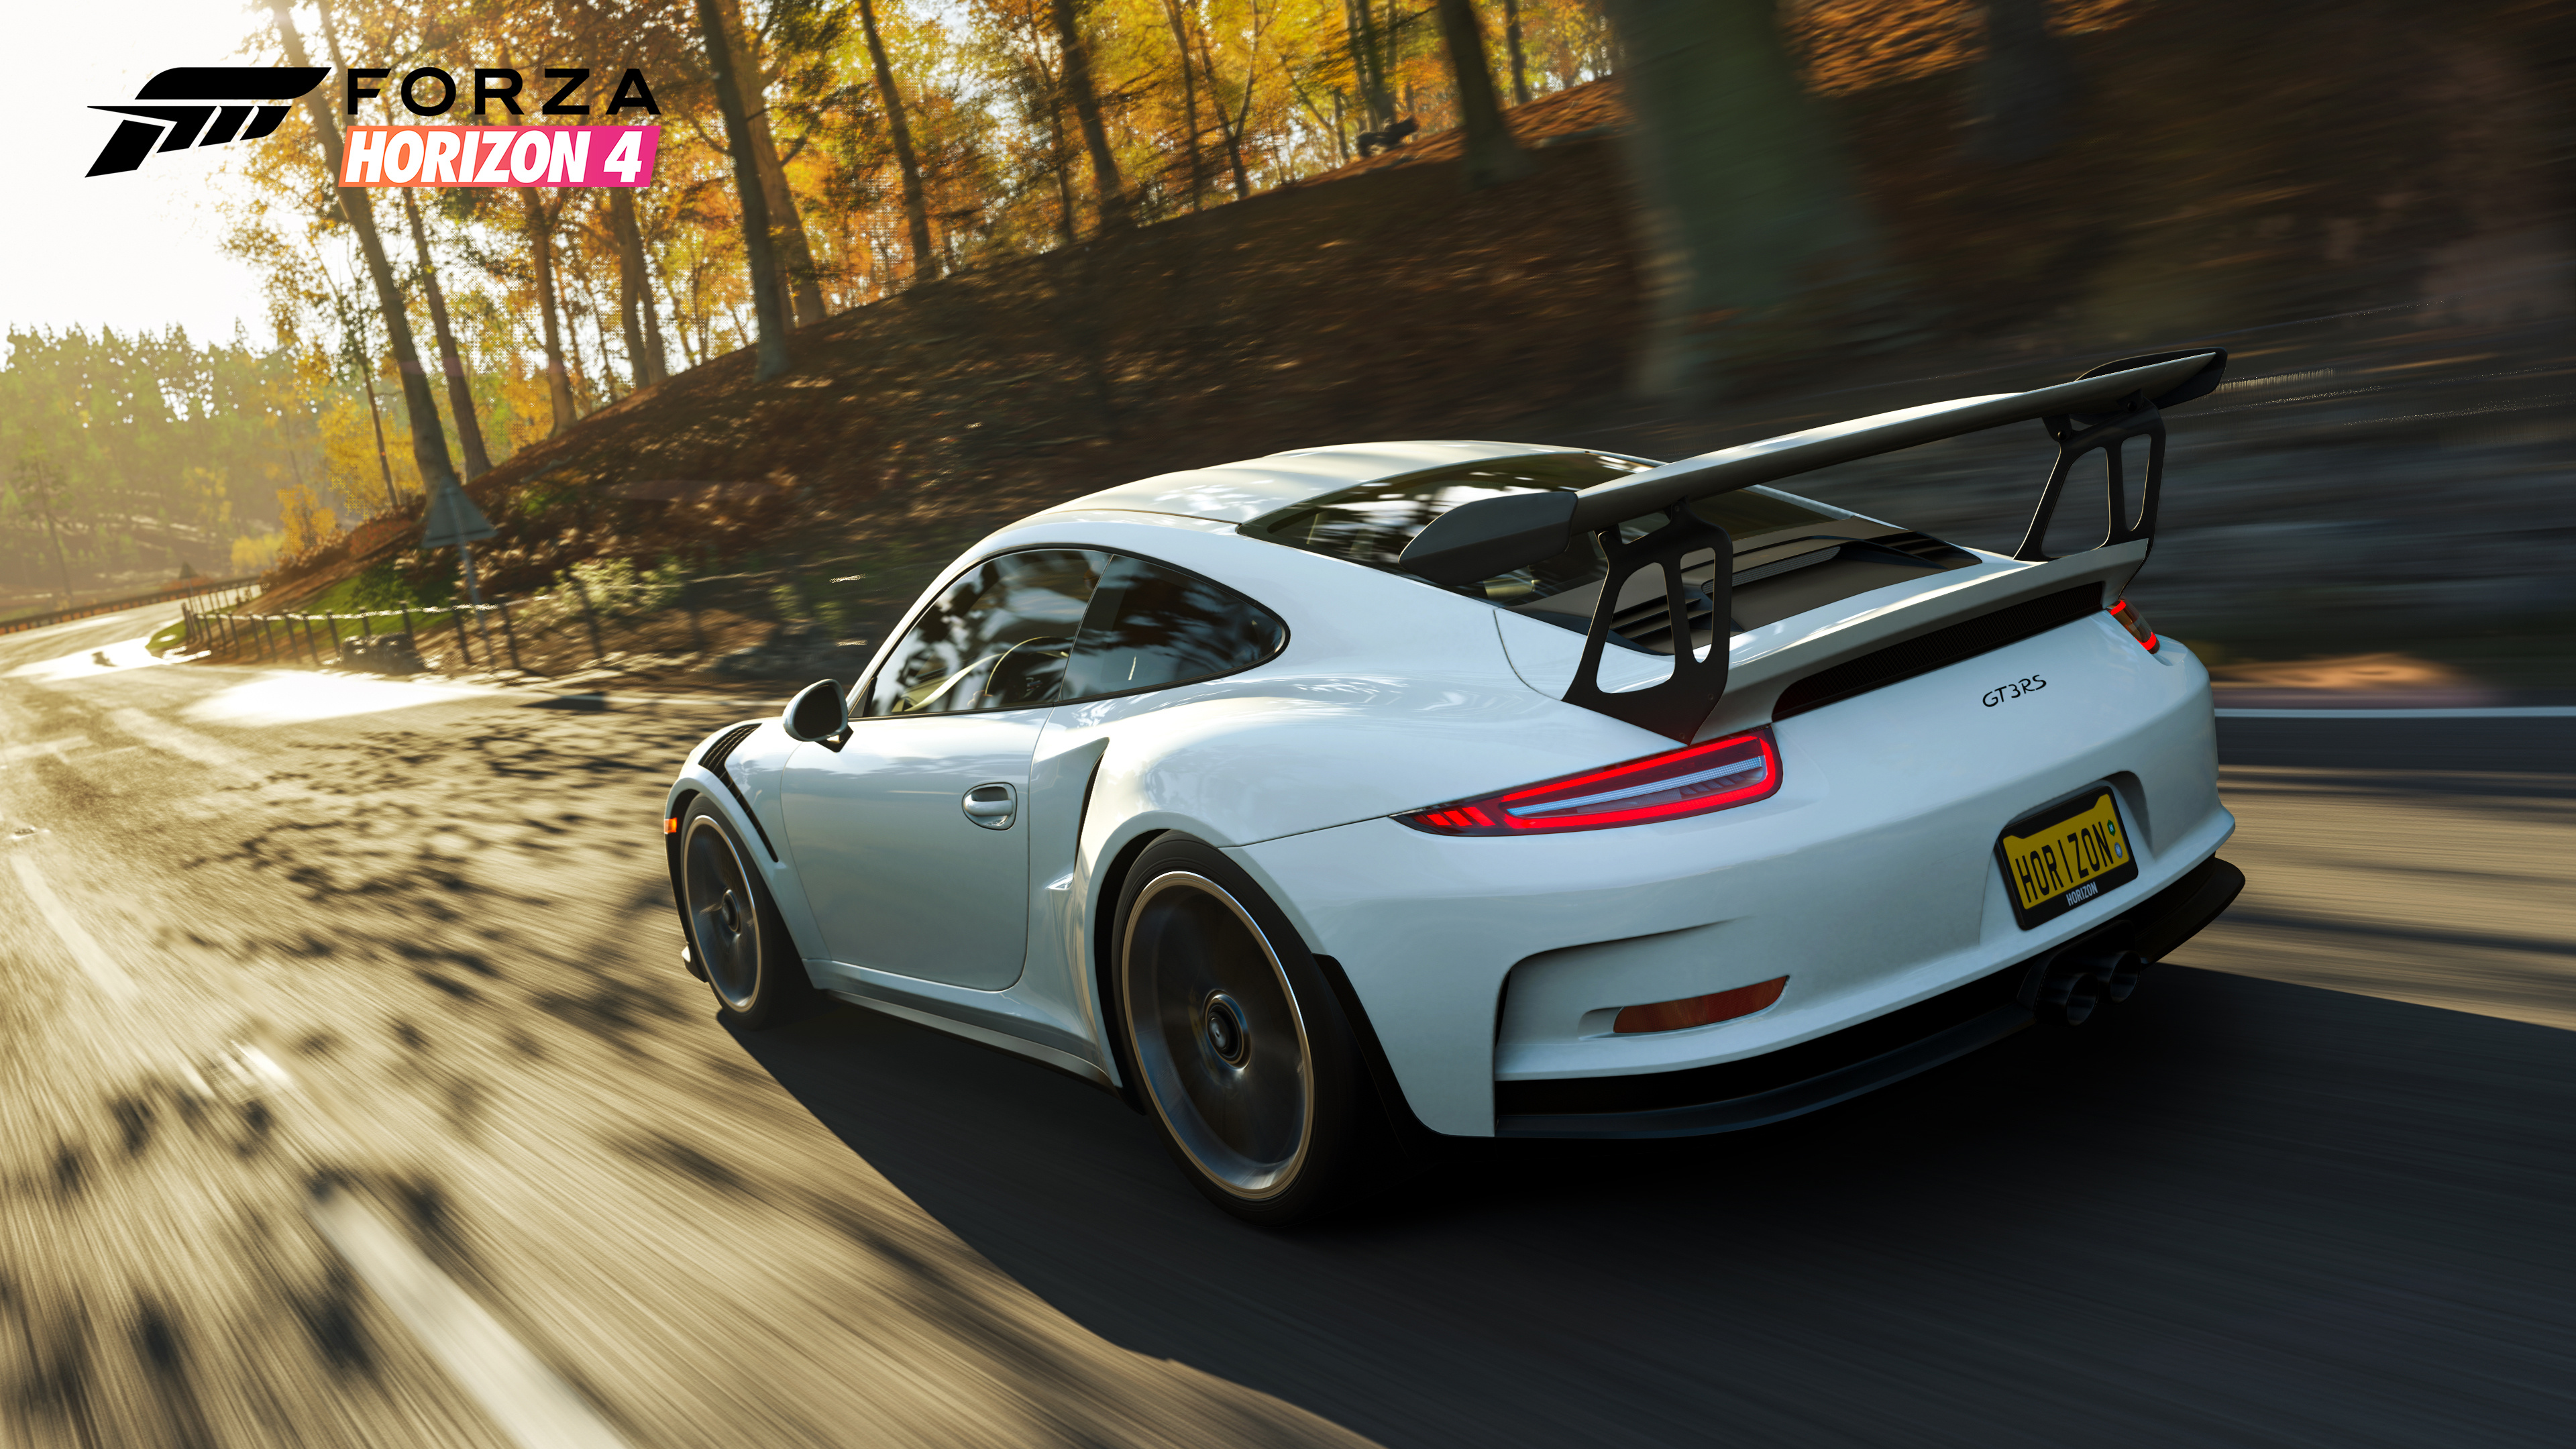 Forza Horizon 4 Is Gifting A Stunning Free Porsche For All Players Xbox News